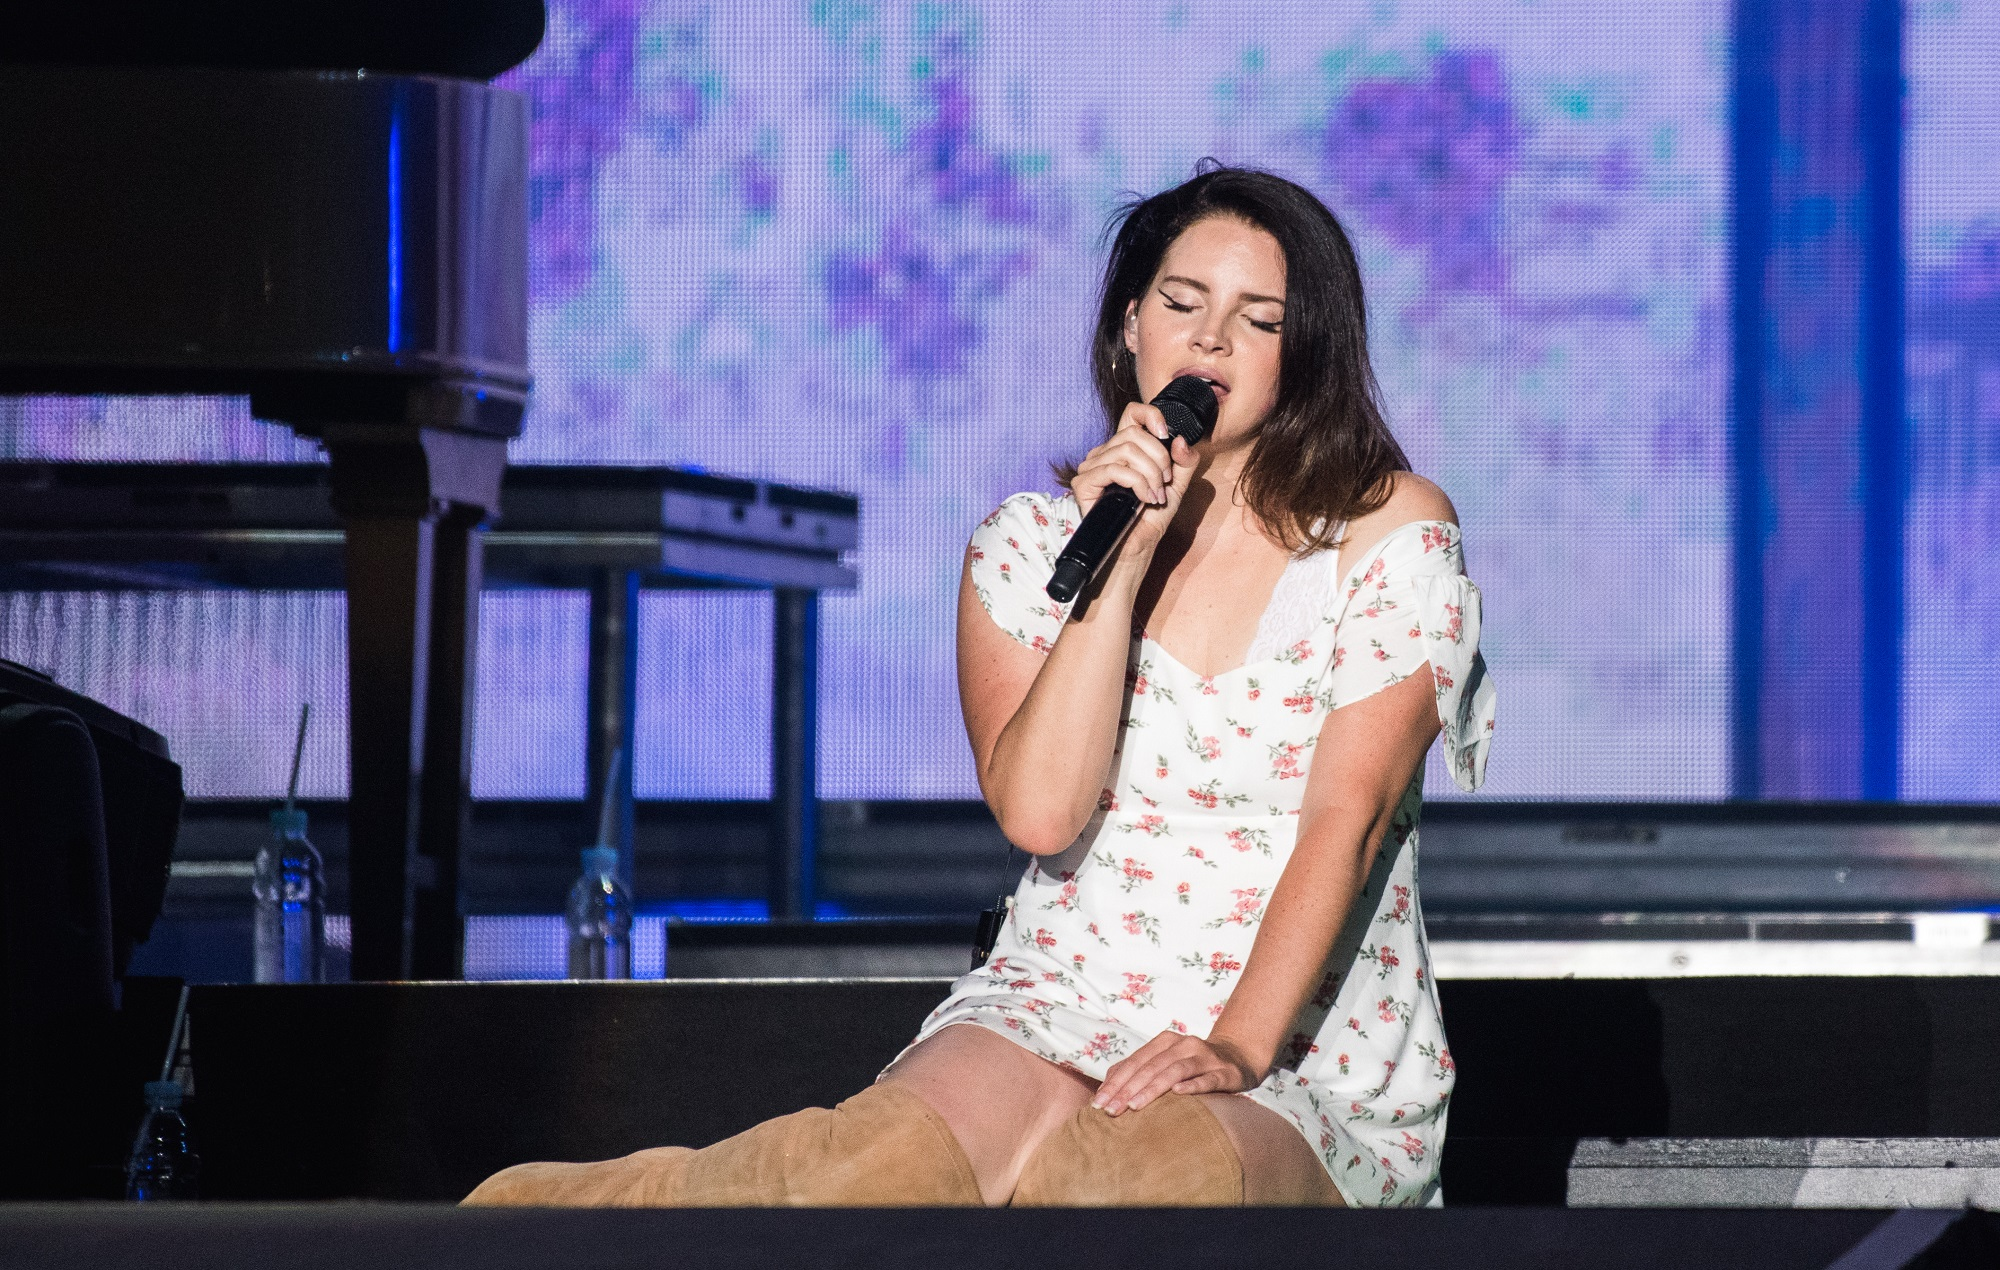 NME Festival blog: Lana Del Rey's new album 'Norman Fucking Rockwell!' – everything we know so far